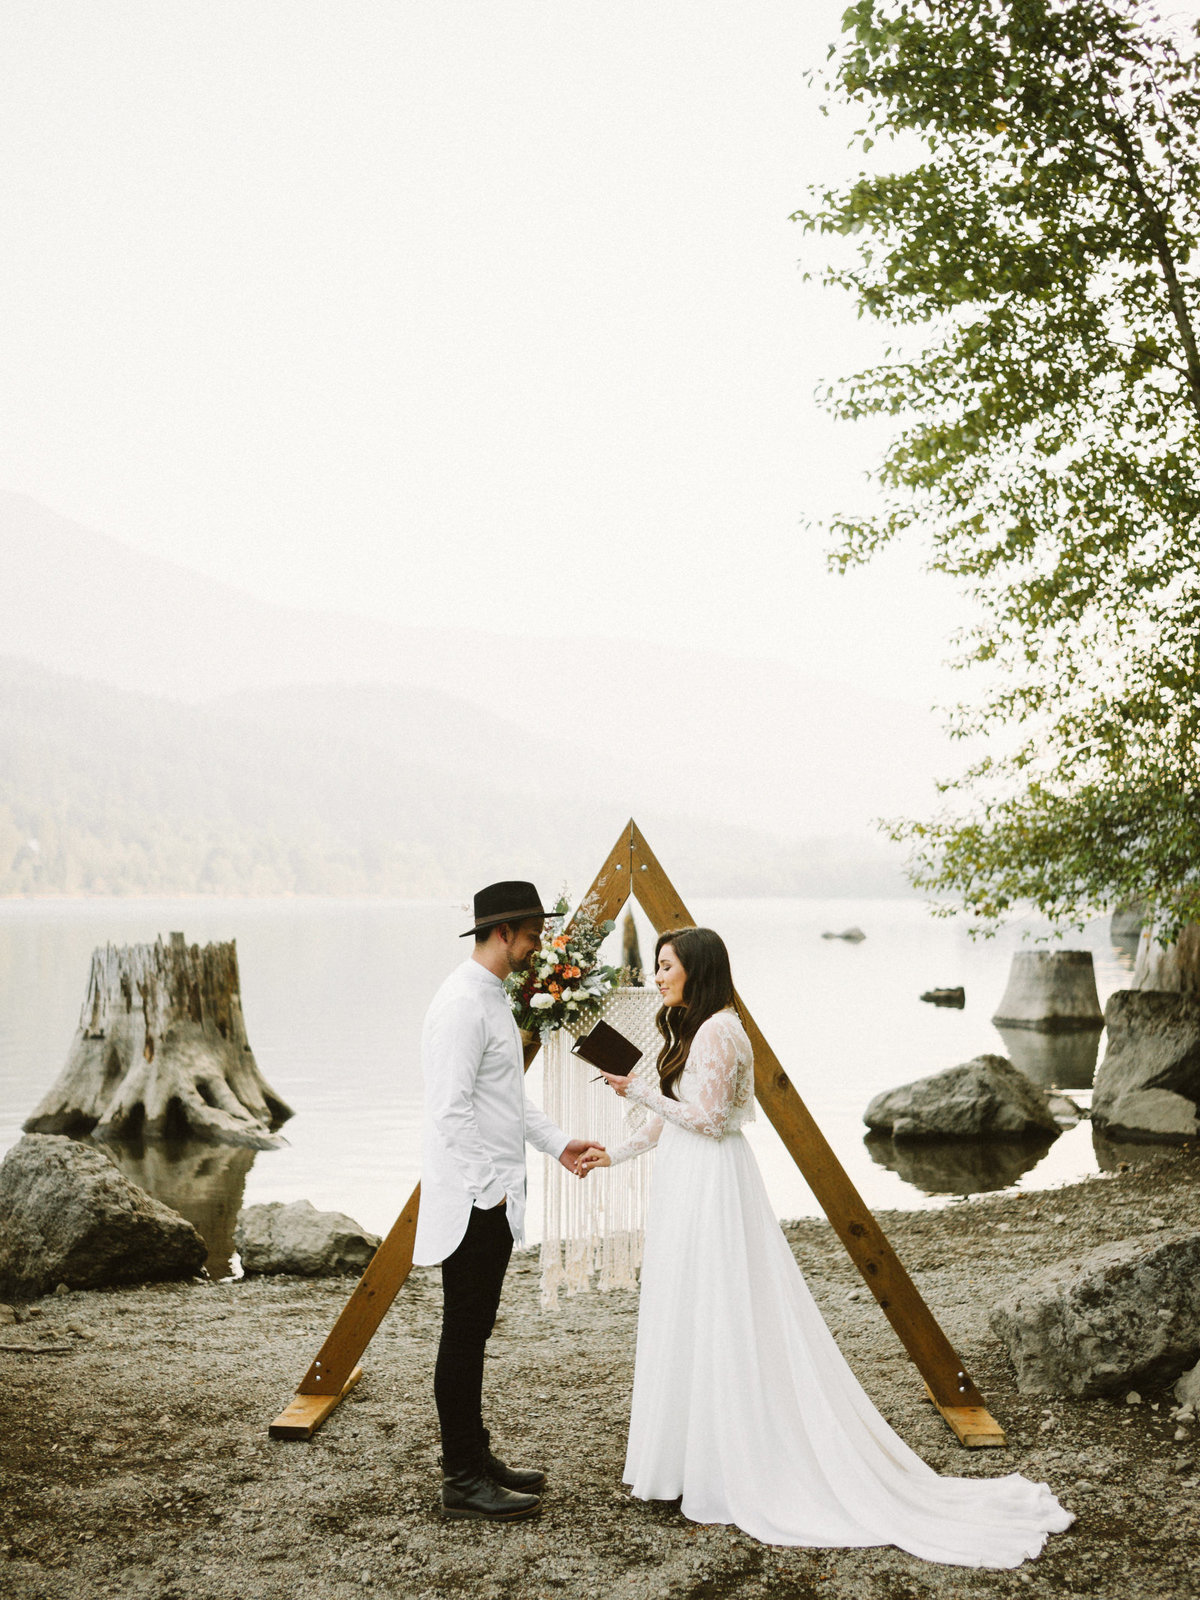 athena-and-camron-seattle-elopement-wedding-benj-haisch-rattlesnake-lake-christian-couple-goals43